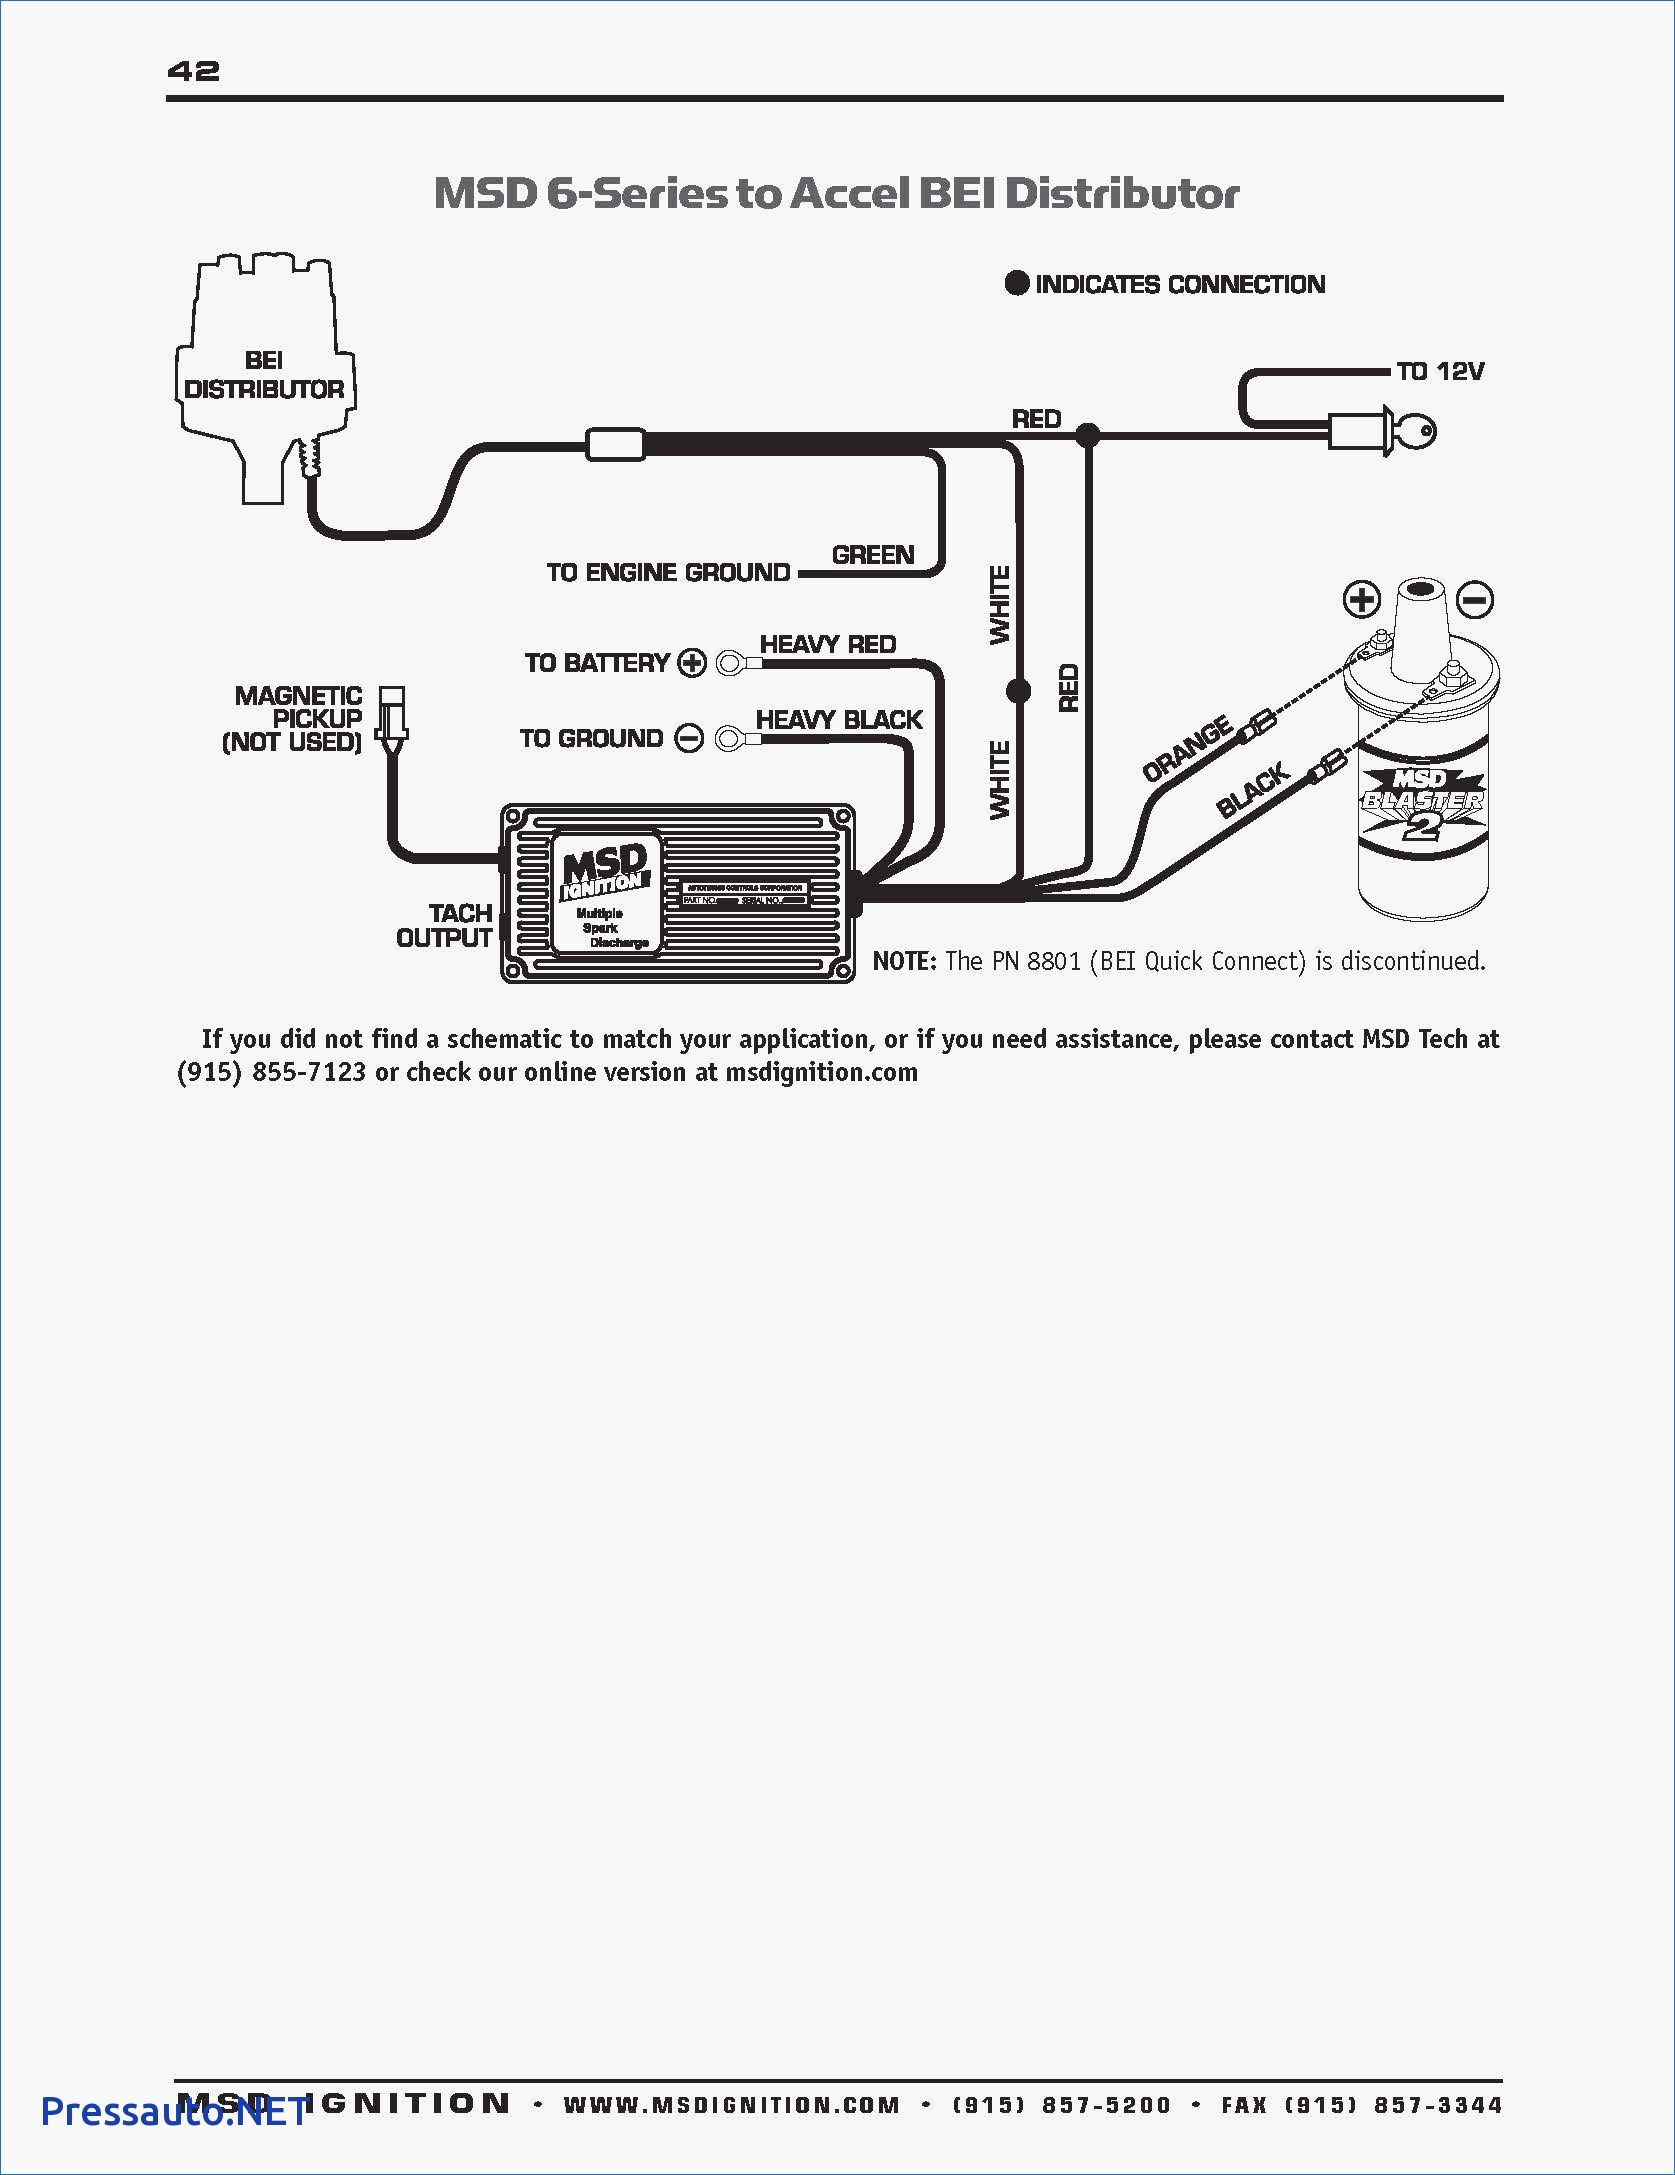 DIAGRAM] 4 Pin Hei Ignition Module Wiring Diagram FULL Version HD Quality  Wiring Diagram - CARRYBOYPHIL.K-DANSE.FRK-danse.fr